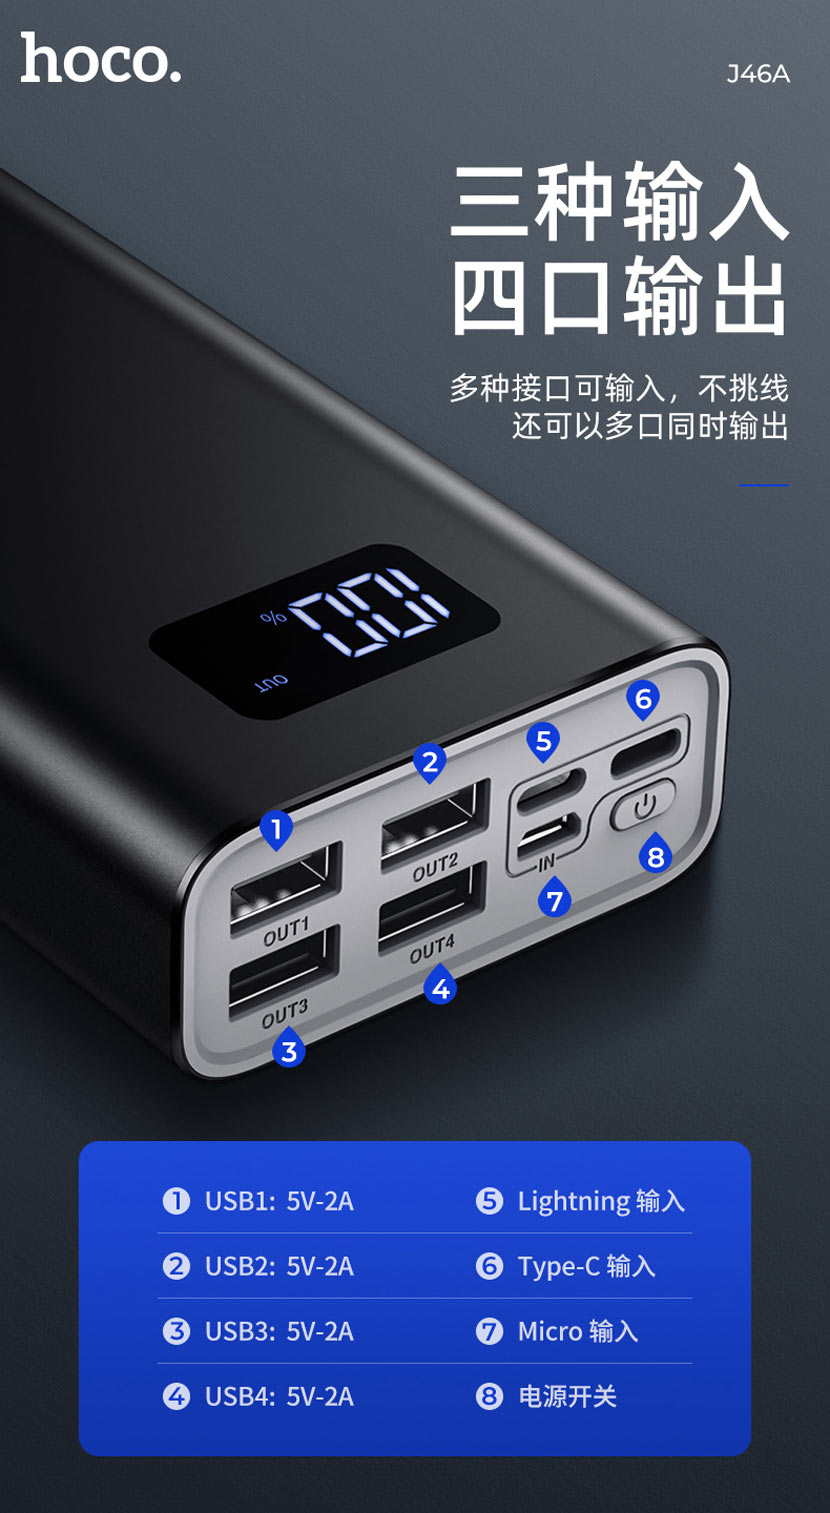 hoco news j46a star ocean mobile power bank 20000mah input output cn